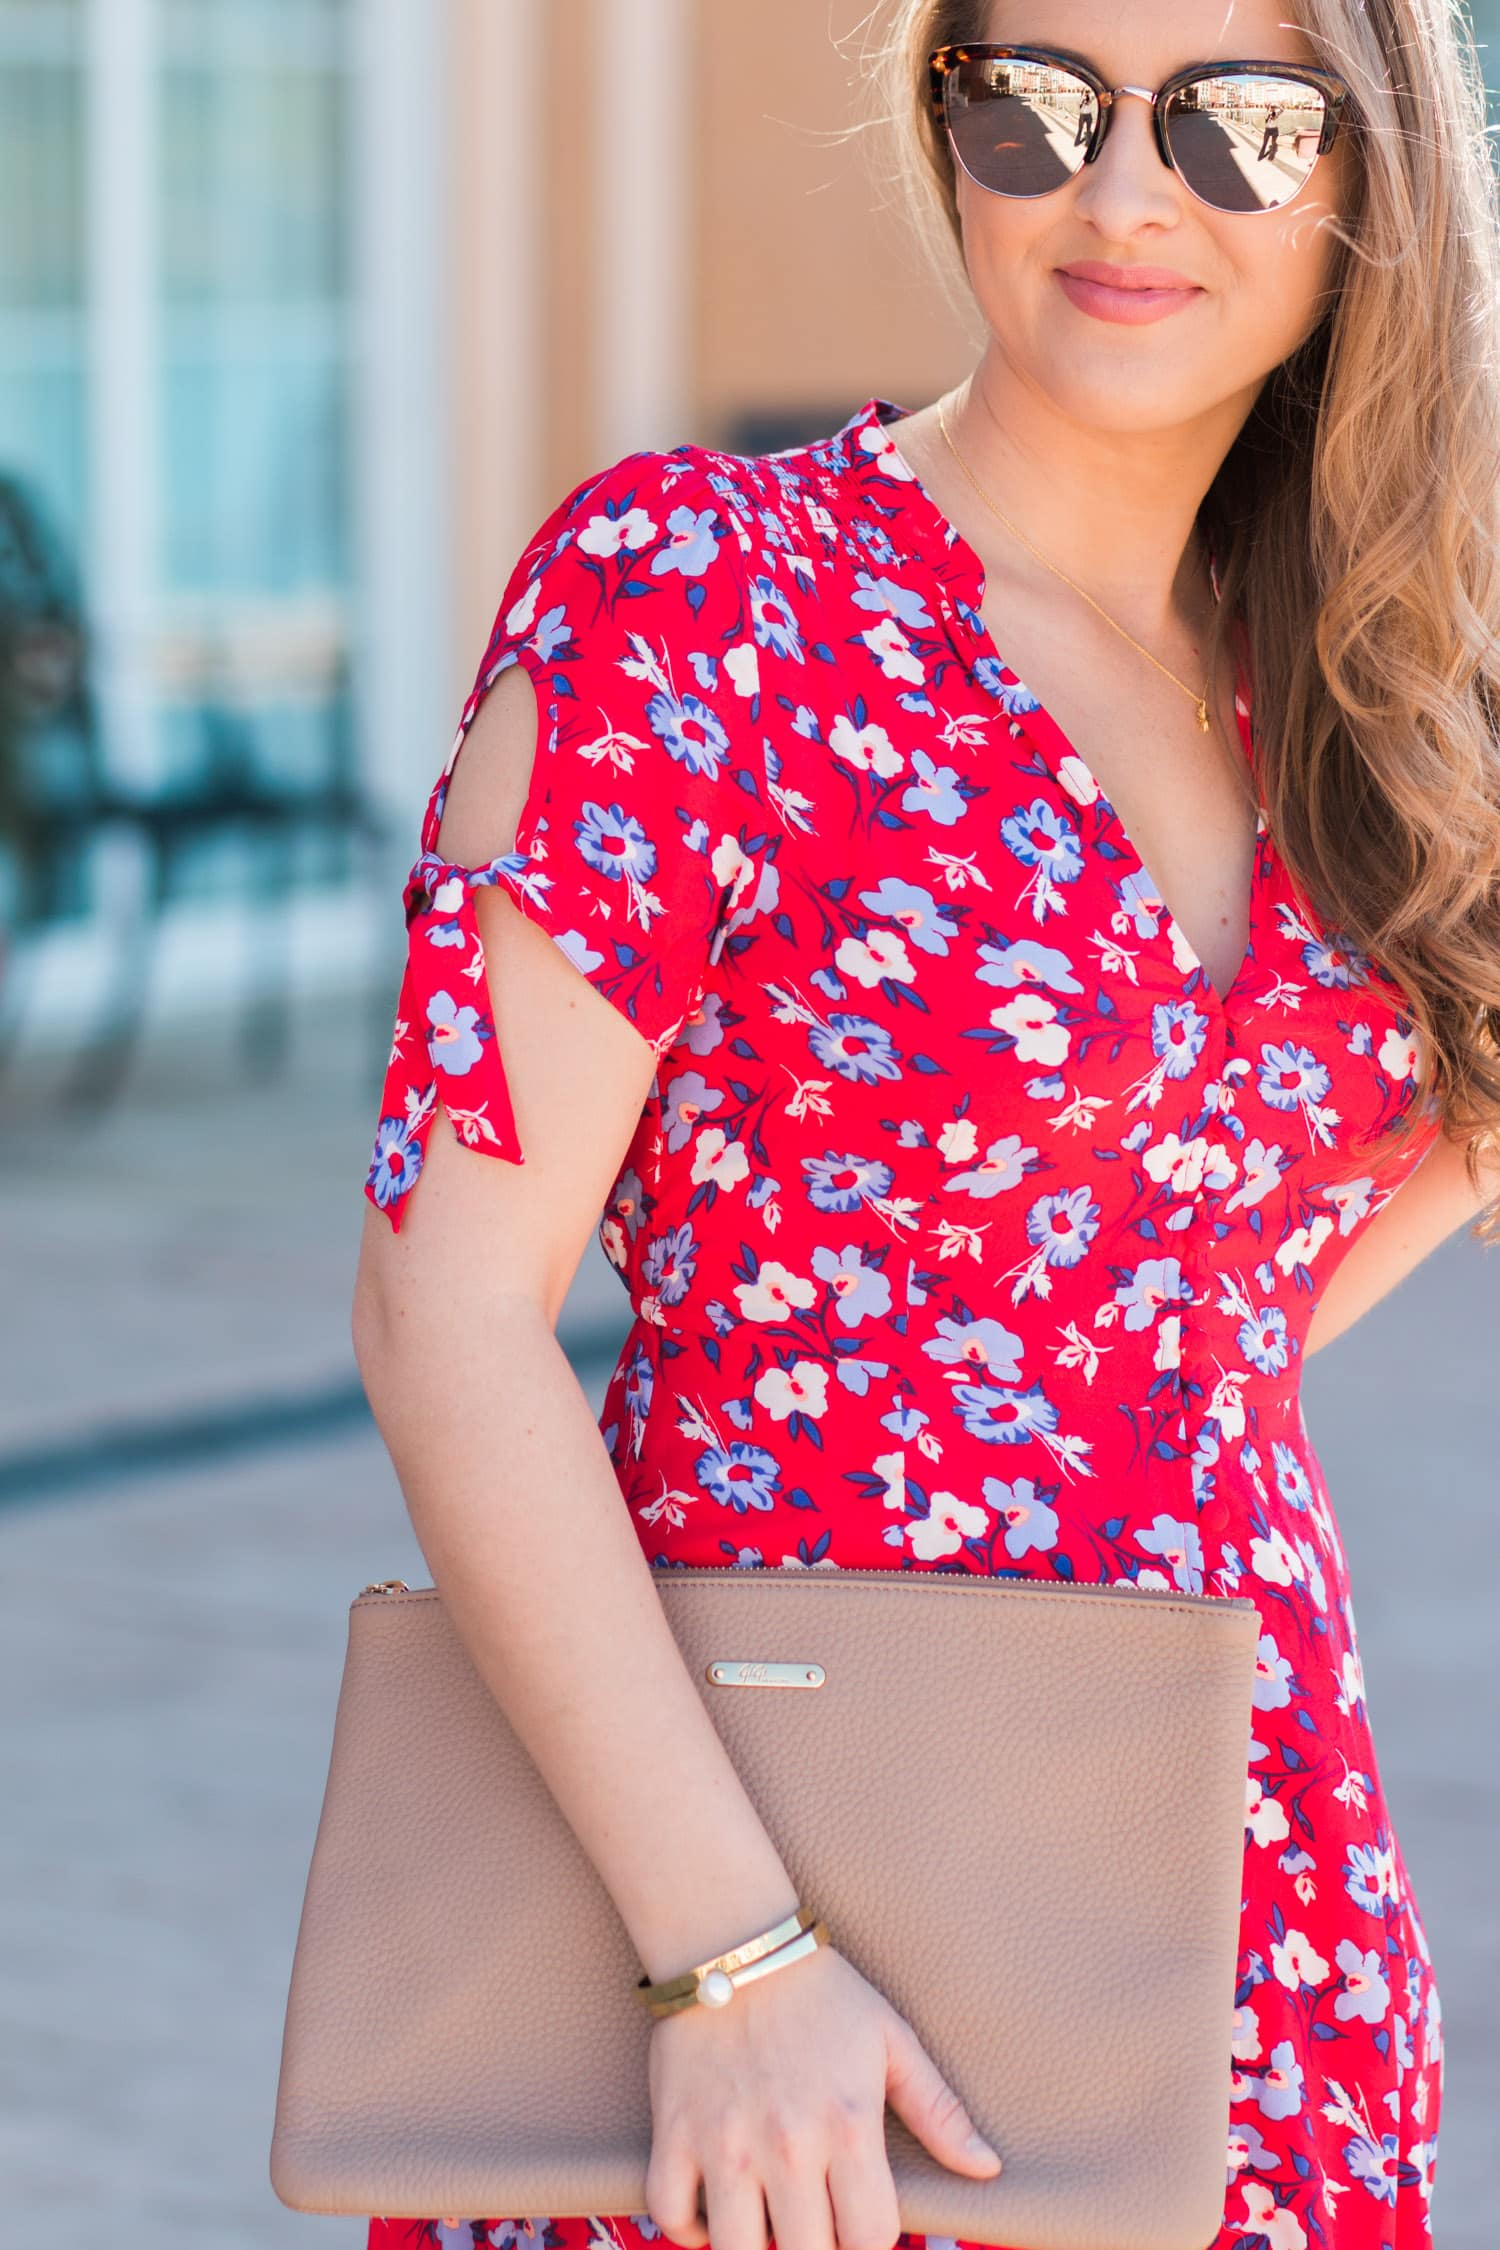 Sunglasses smiling woman and nude purse with red floral dress